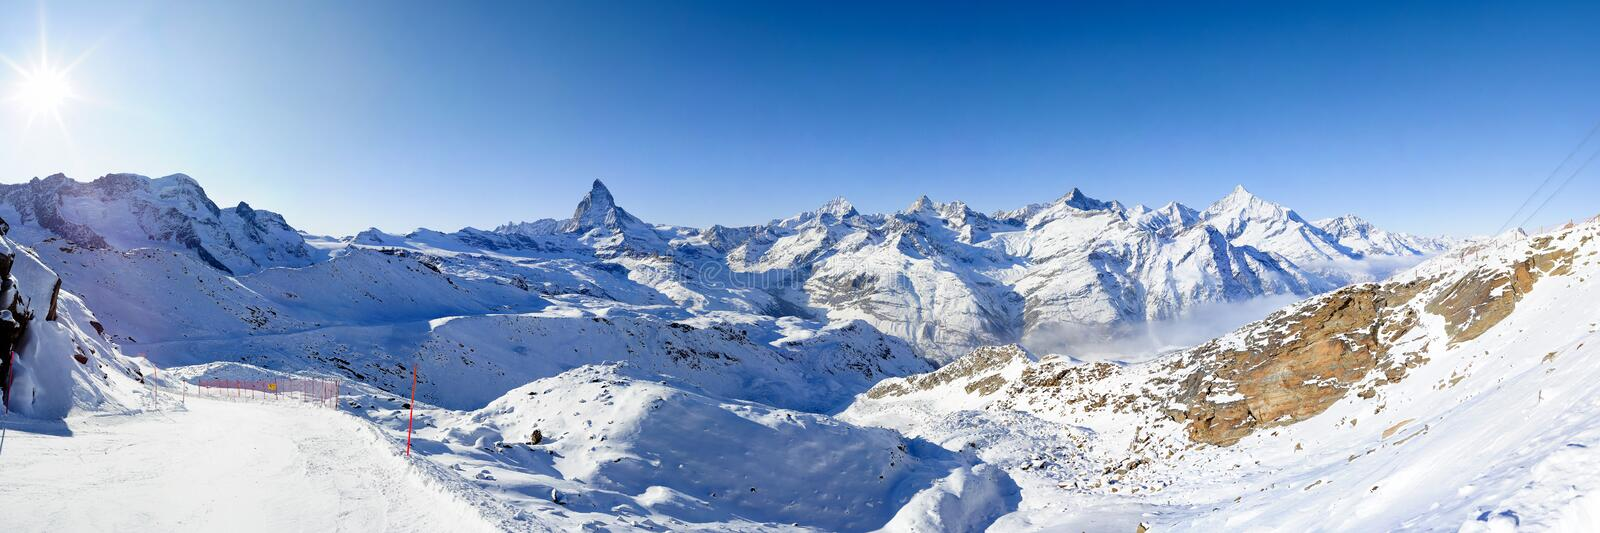 Panorama from gornergrat in winter. Parnorama at Gornergrat, Zermatt, Switzerland in Winter stock photos